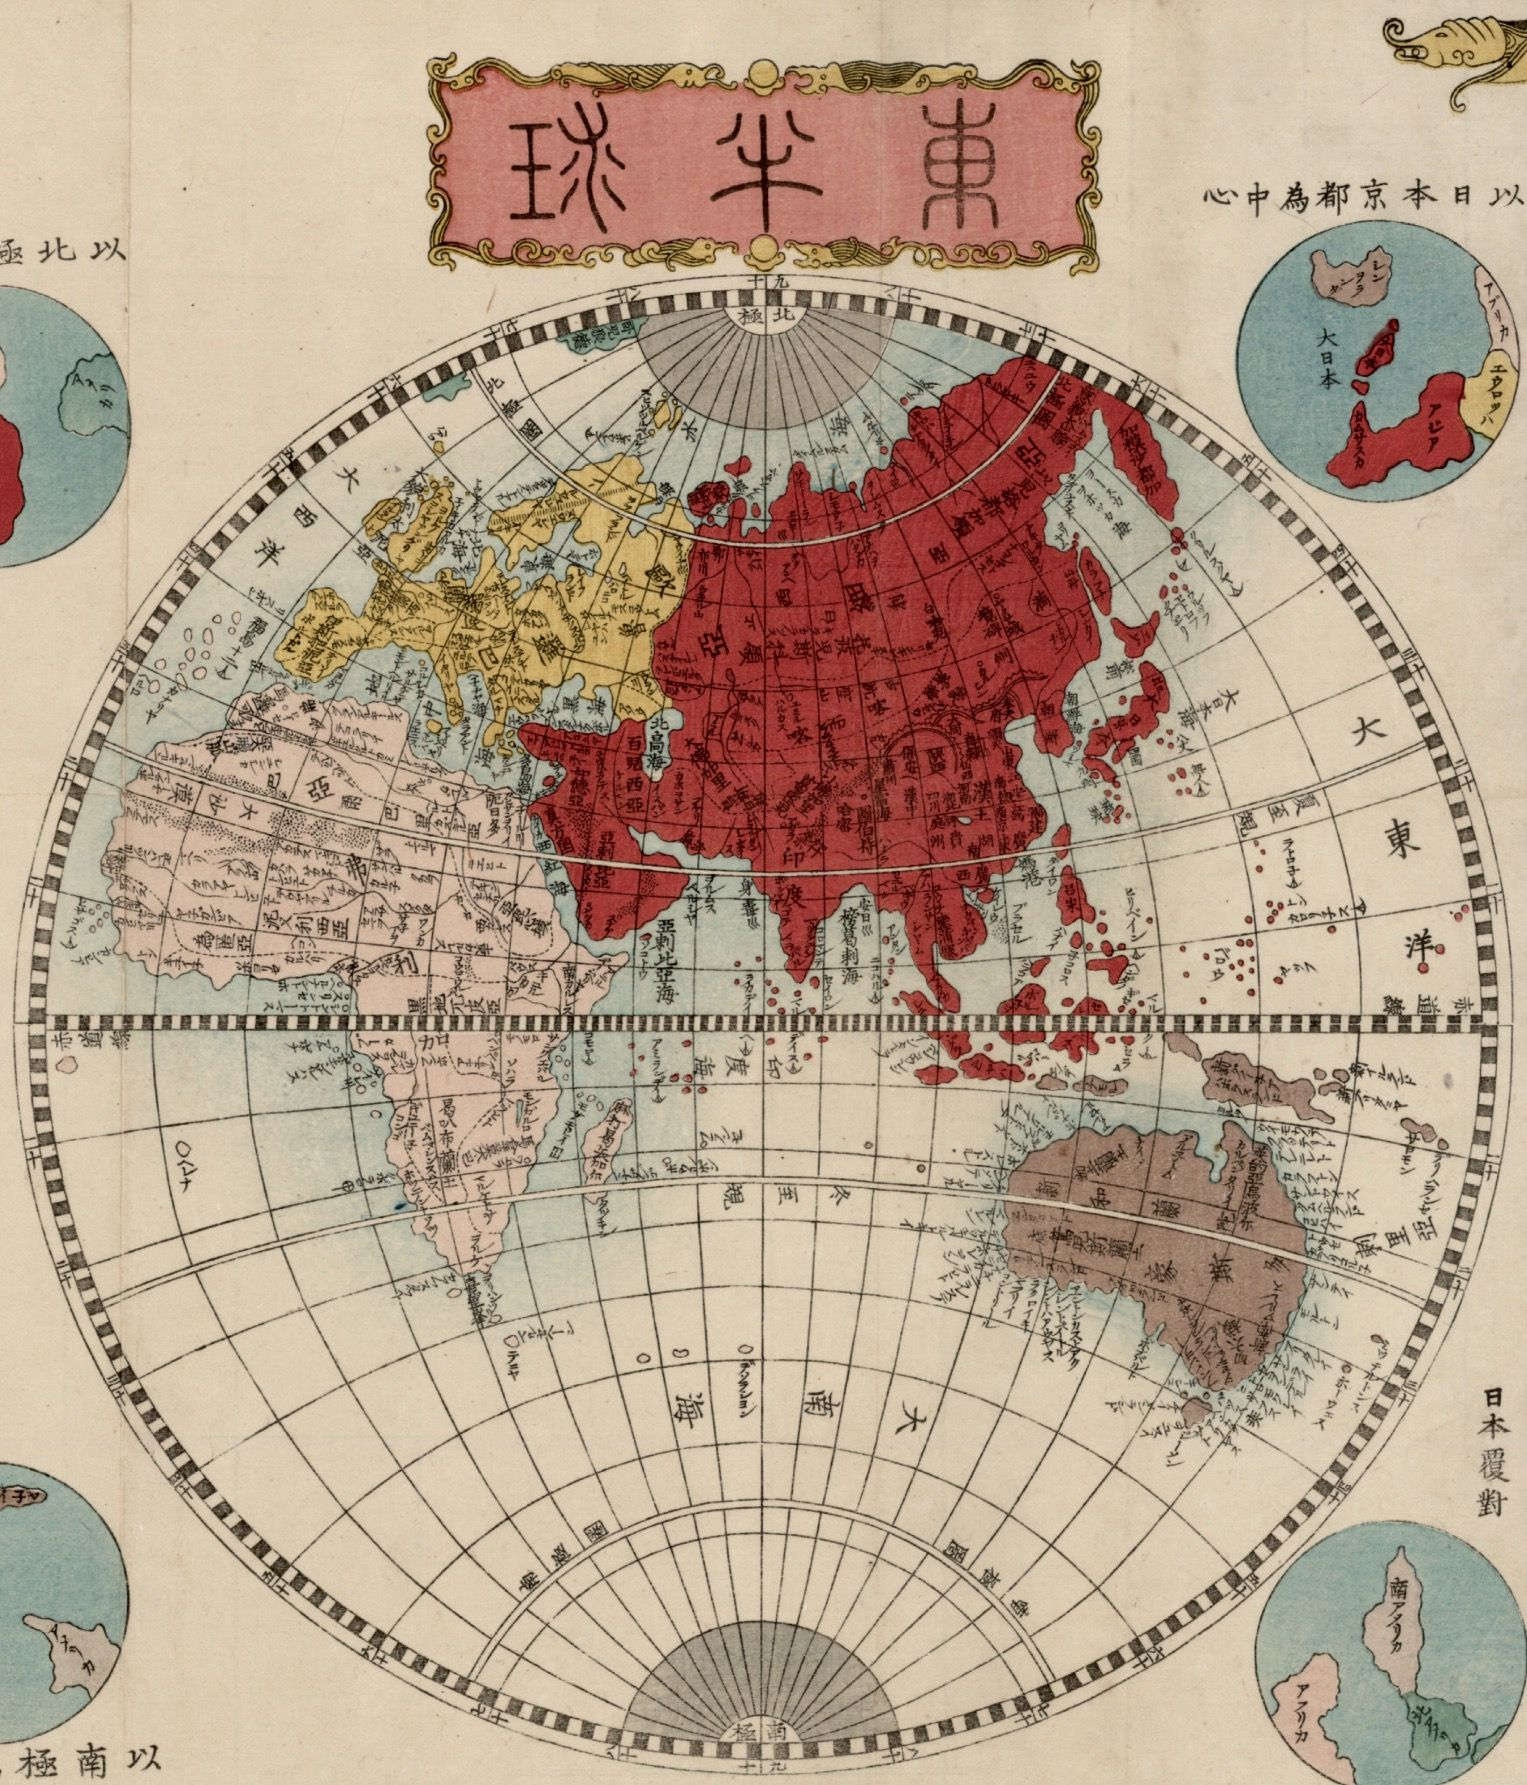 Eastern hemisphere from 1848 japanese world map map of all the eastern hemisphere from 1848 japanese world map map of all the countries on the eastern and western hemispheres revised in kaei period gumiabroncs Image collections